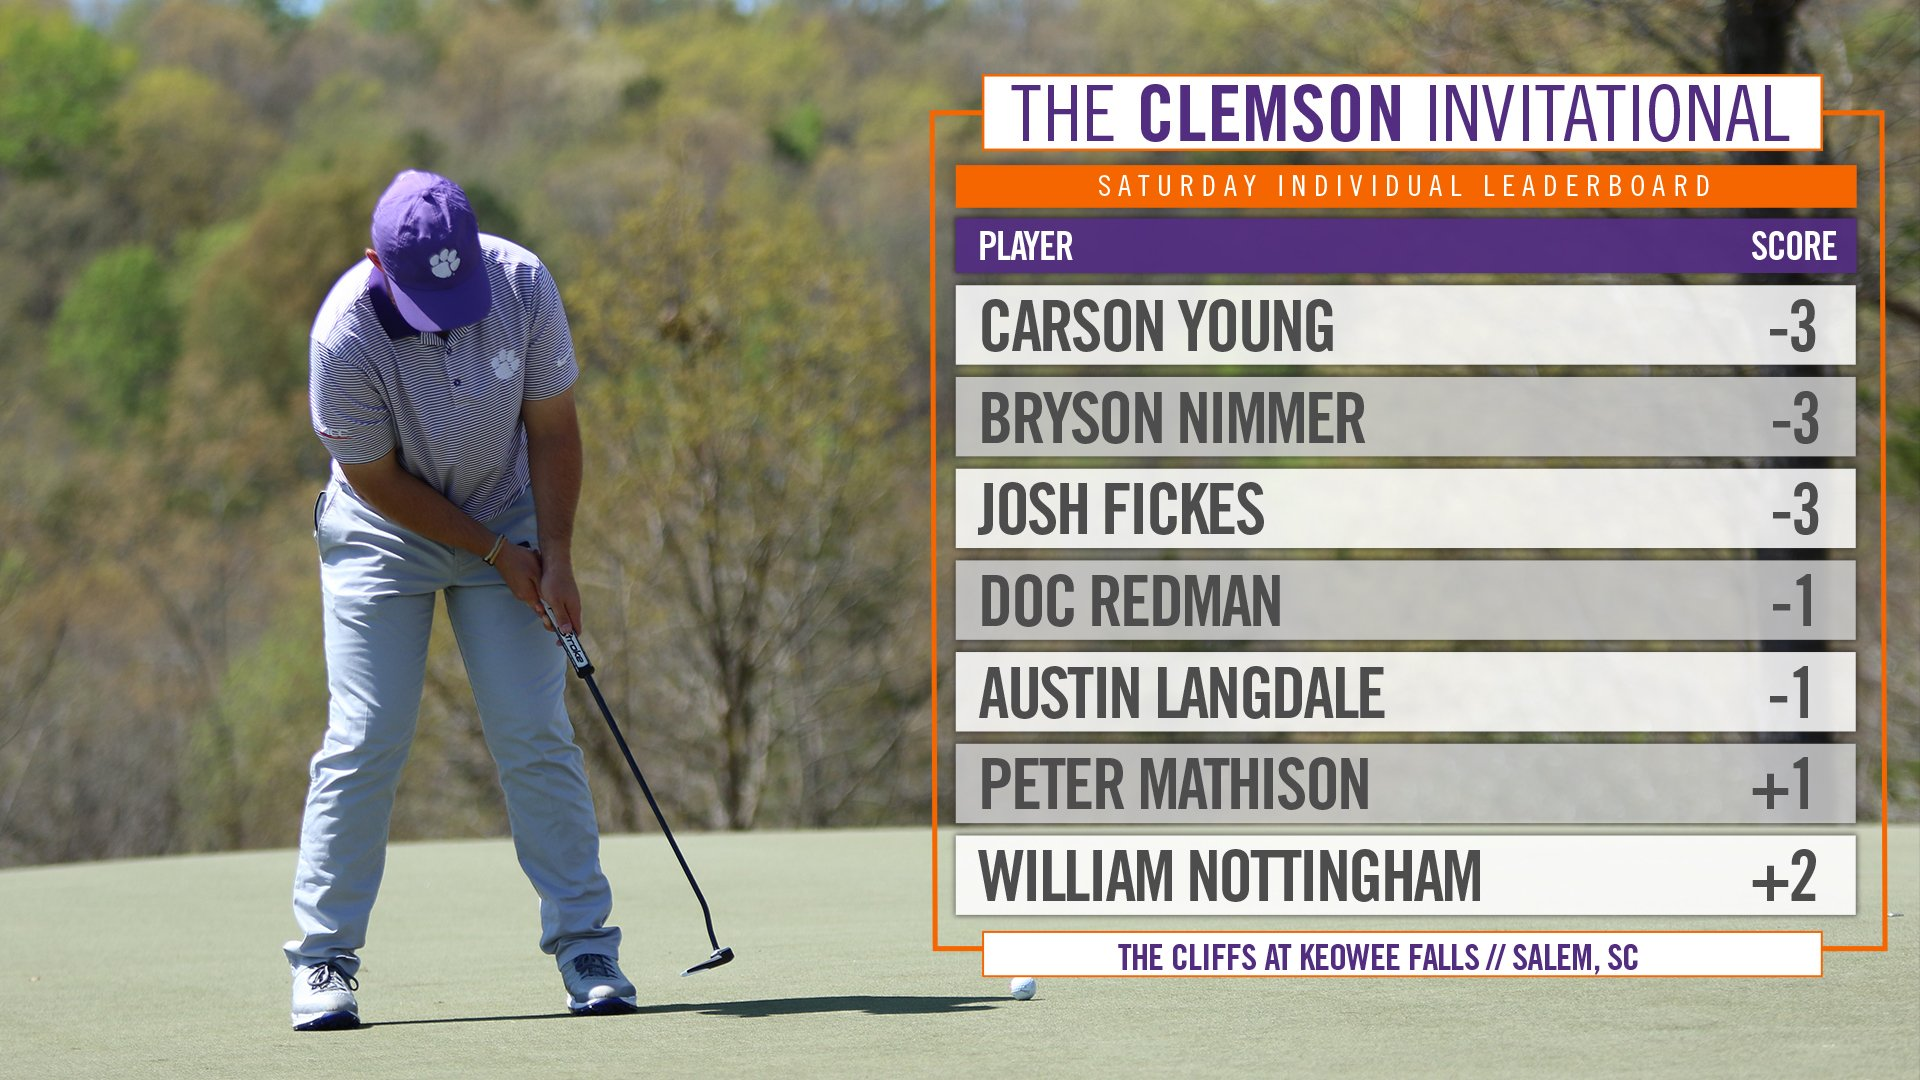 Clemson holds their lead into #ClemsonInvitational Day 3! It's all on the line tomorrow 🥇 https://t.co/EYhdFwq9eb